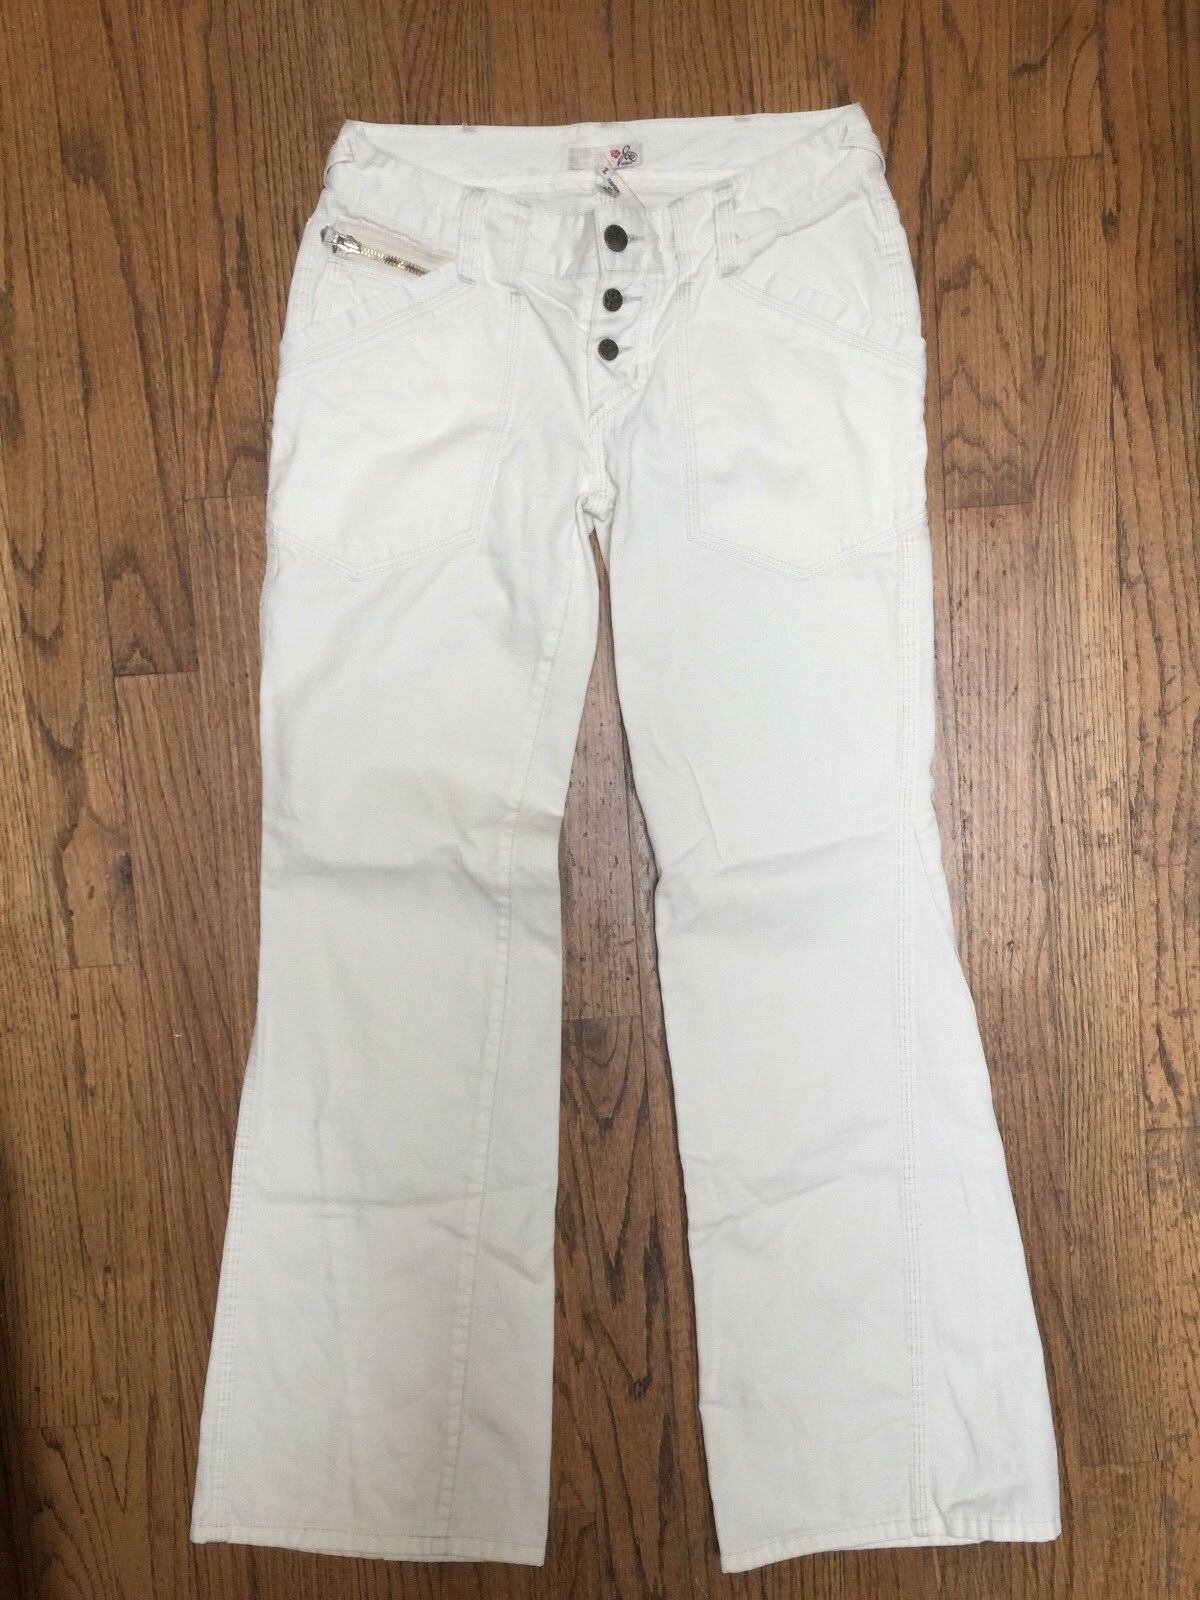 JOIE OFF WHITE FLARE BUTTON FLY COTTON JEAN SZ 2 NWOT